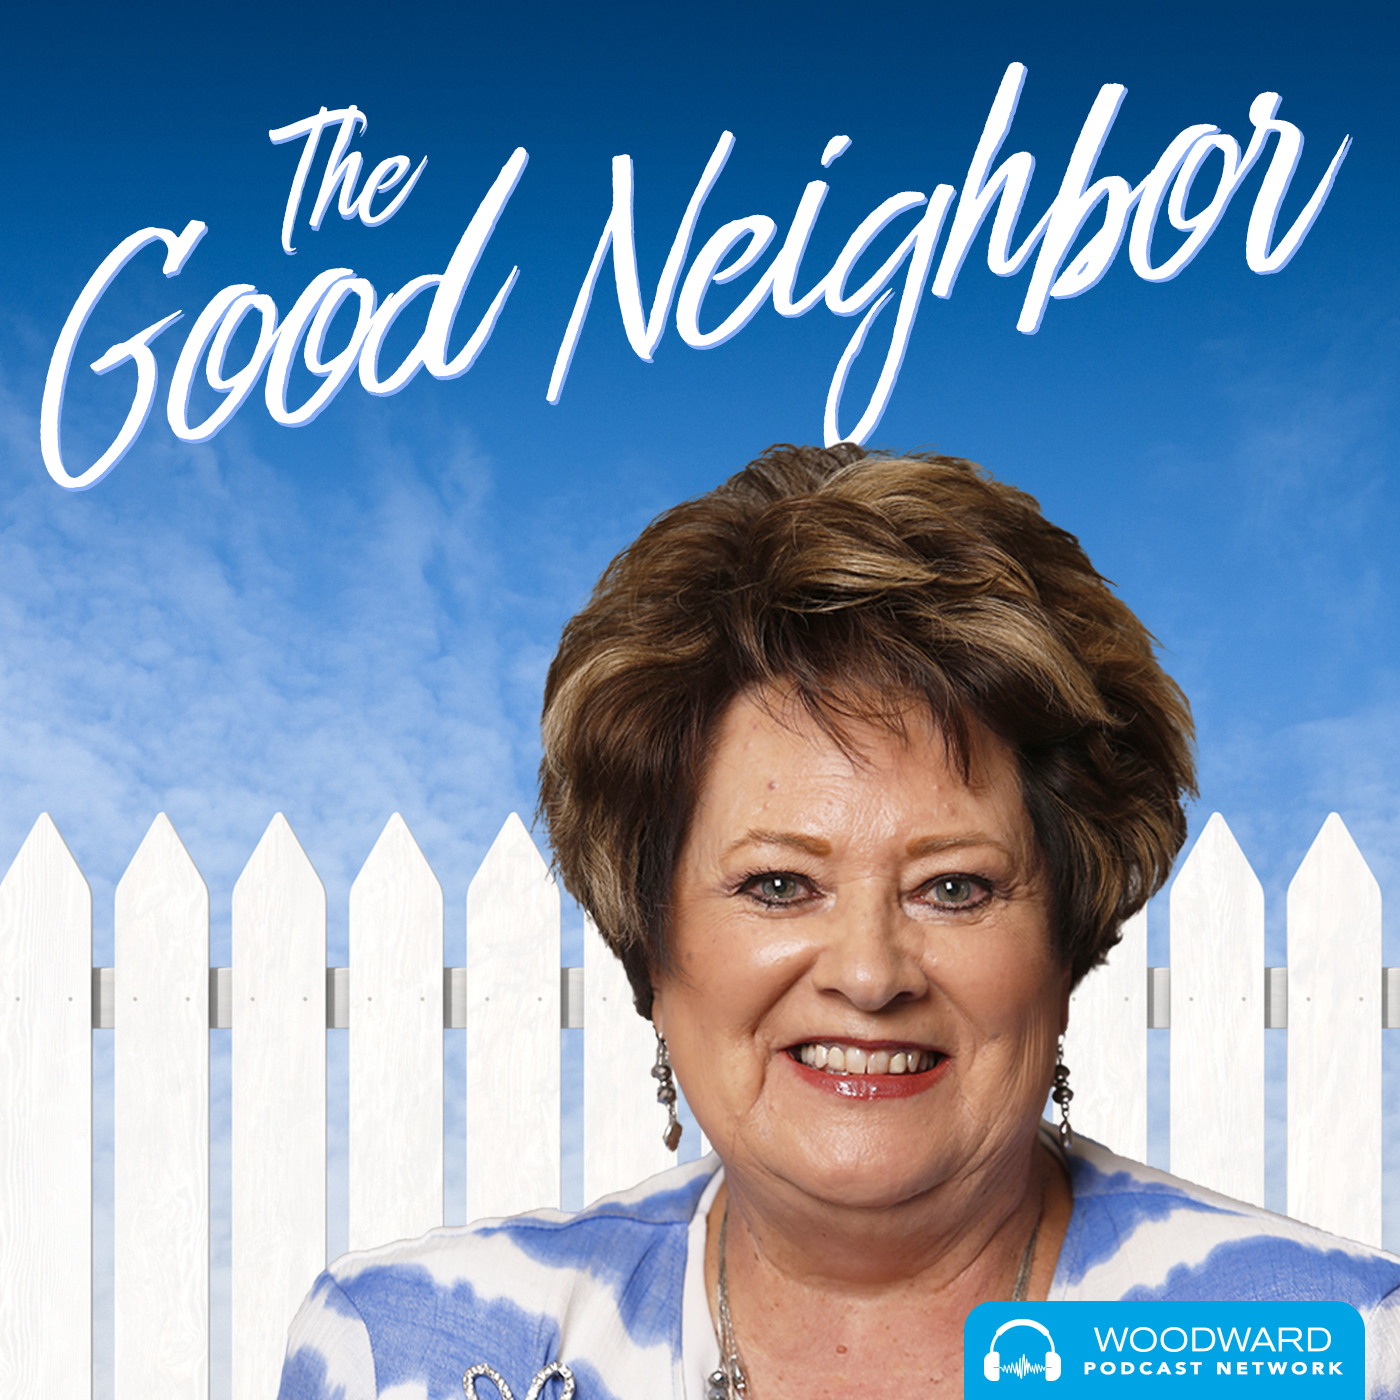 The Good Neighbor Show